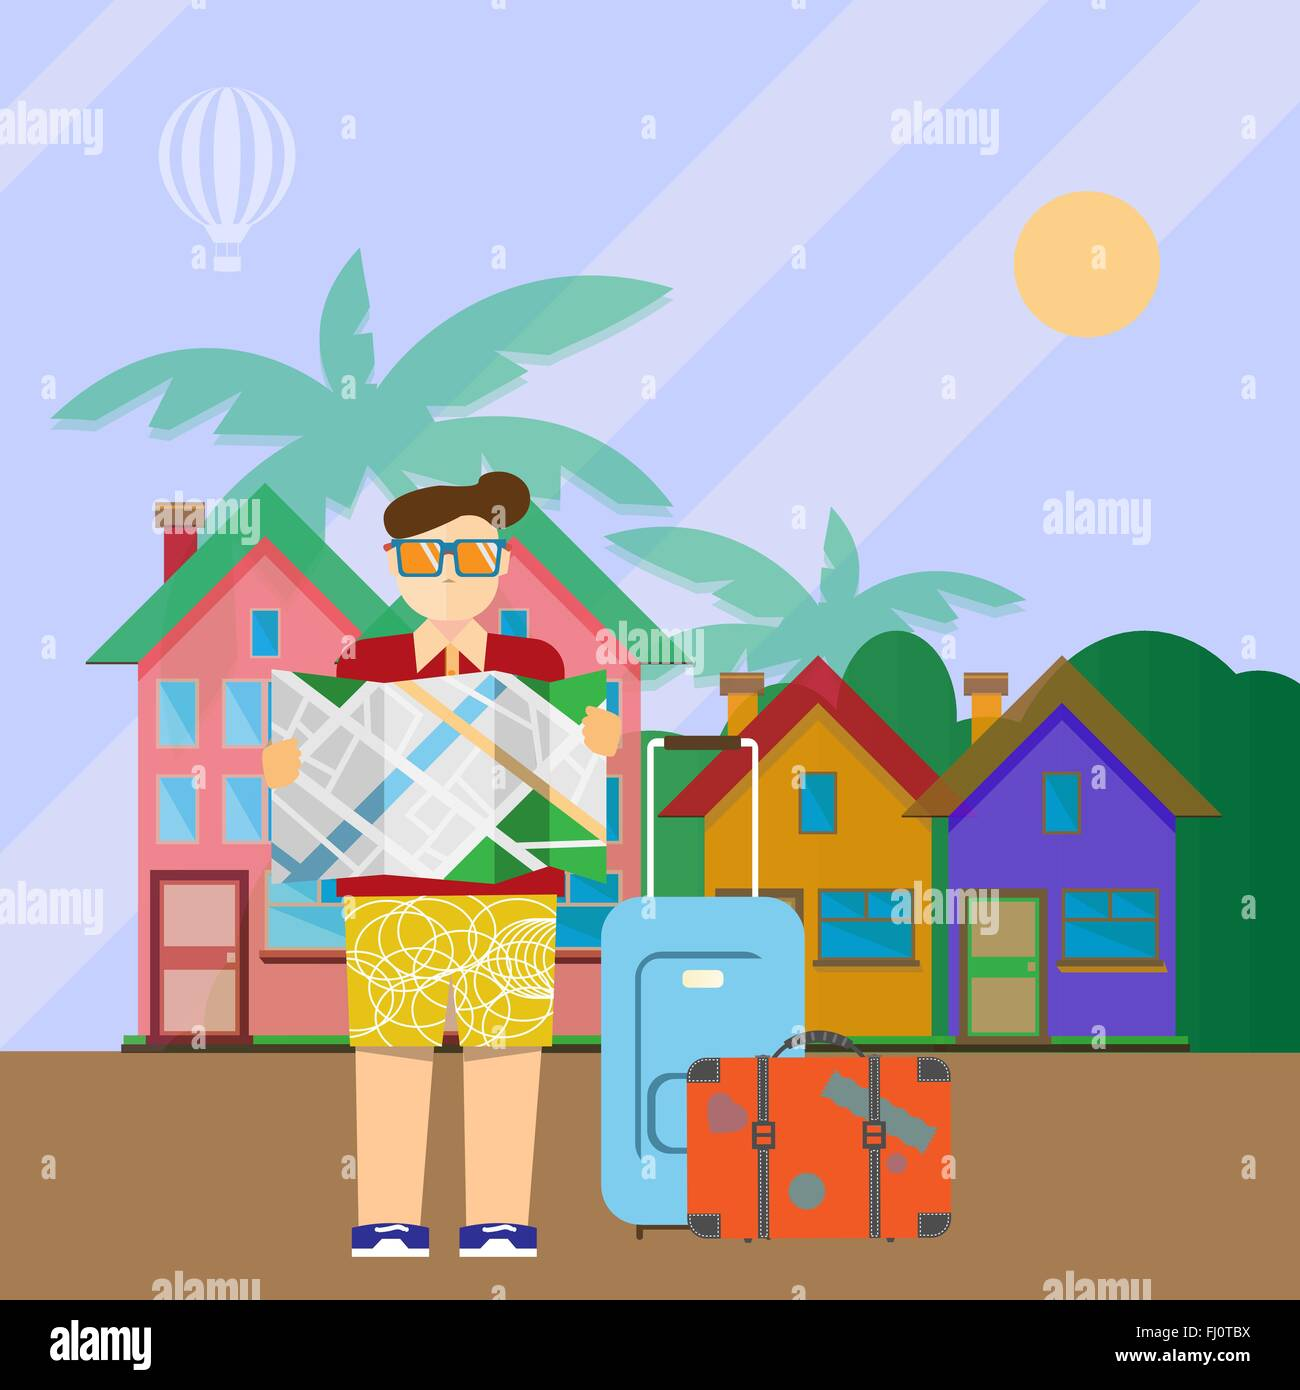 Tourist with map and suitcases and hotel houses in the backdrop. Travel digital vector background colorful illustration. - Stock Image